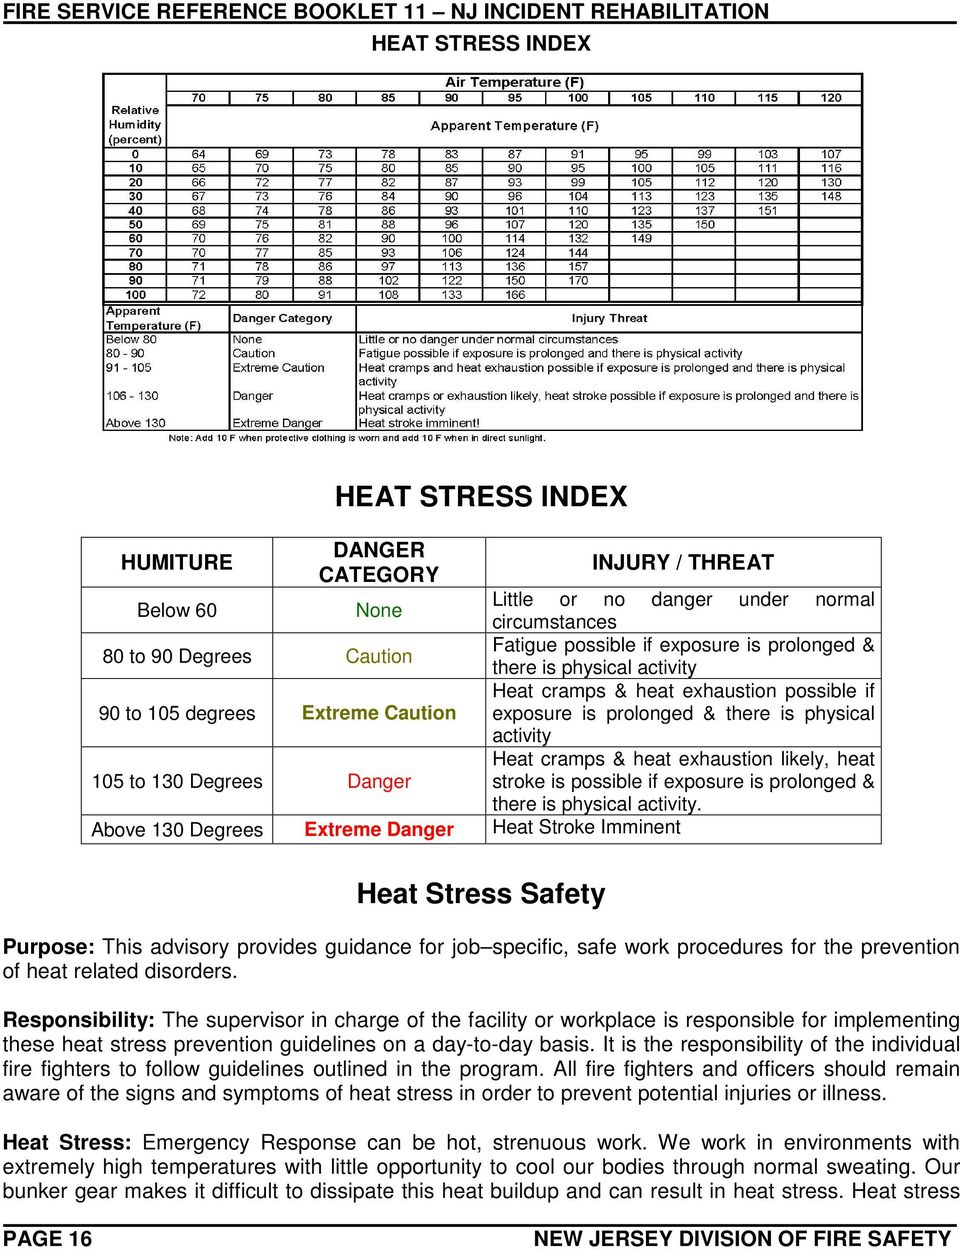 cramps & heat exhaustion likely, heat stroke is possible if exposure is prolonged & there is physical activity.